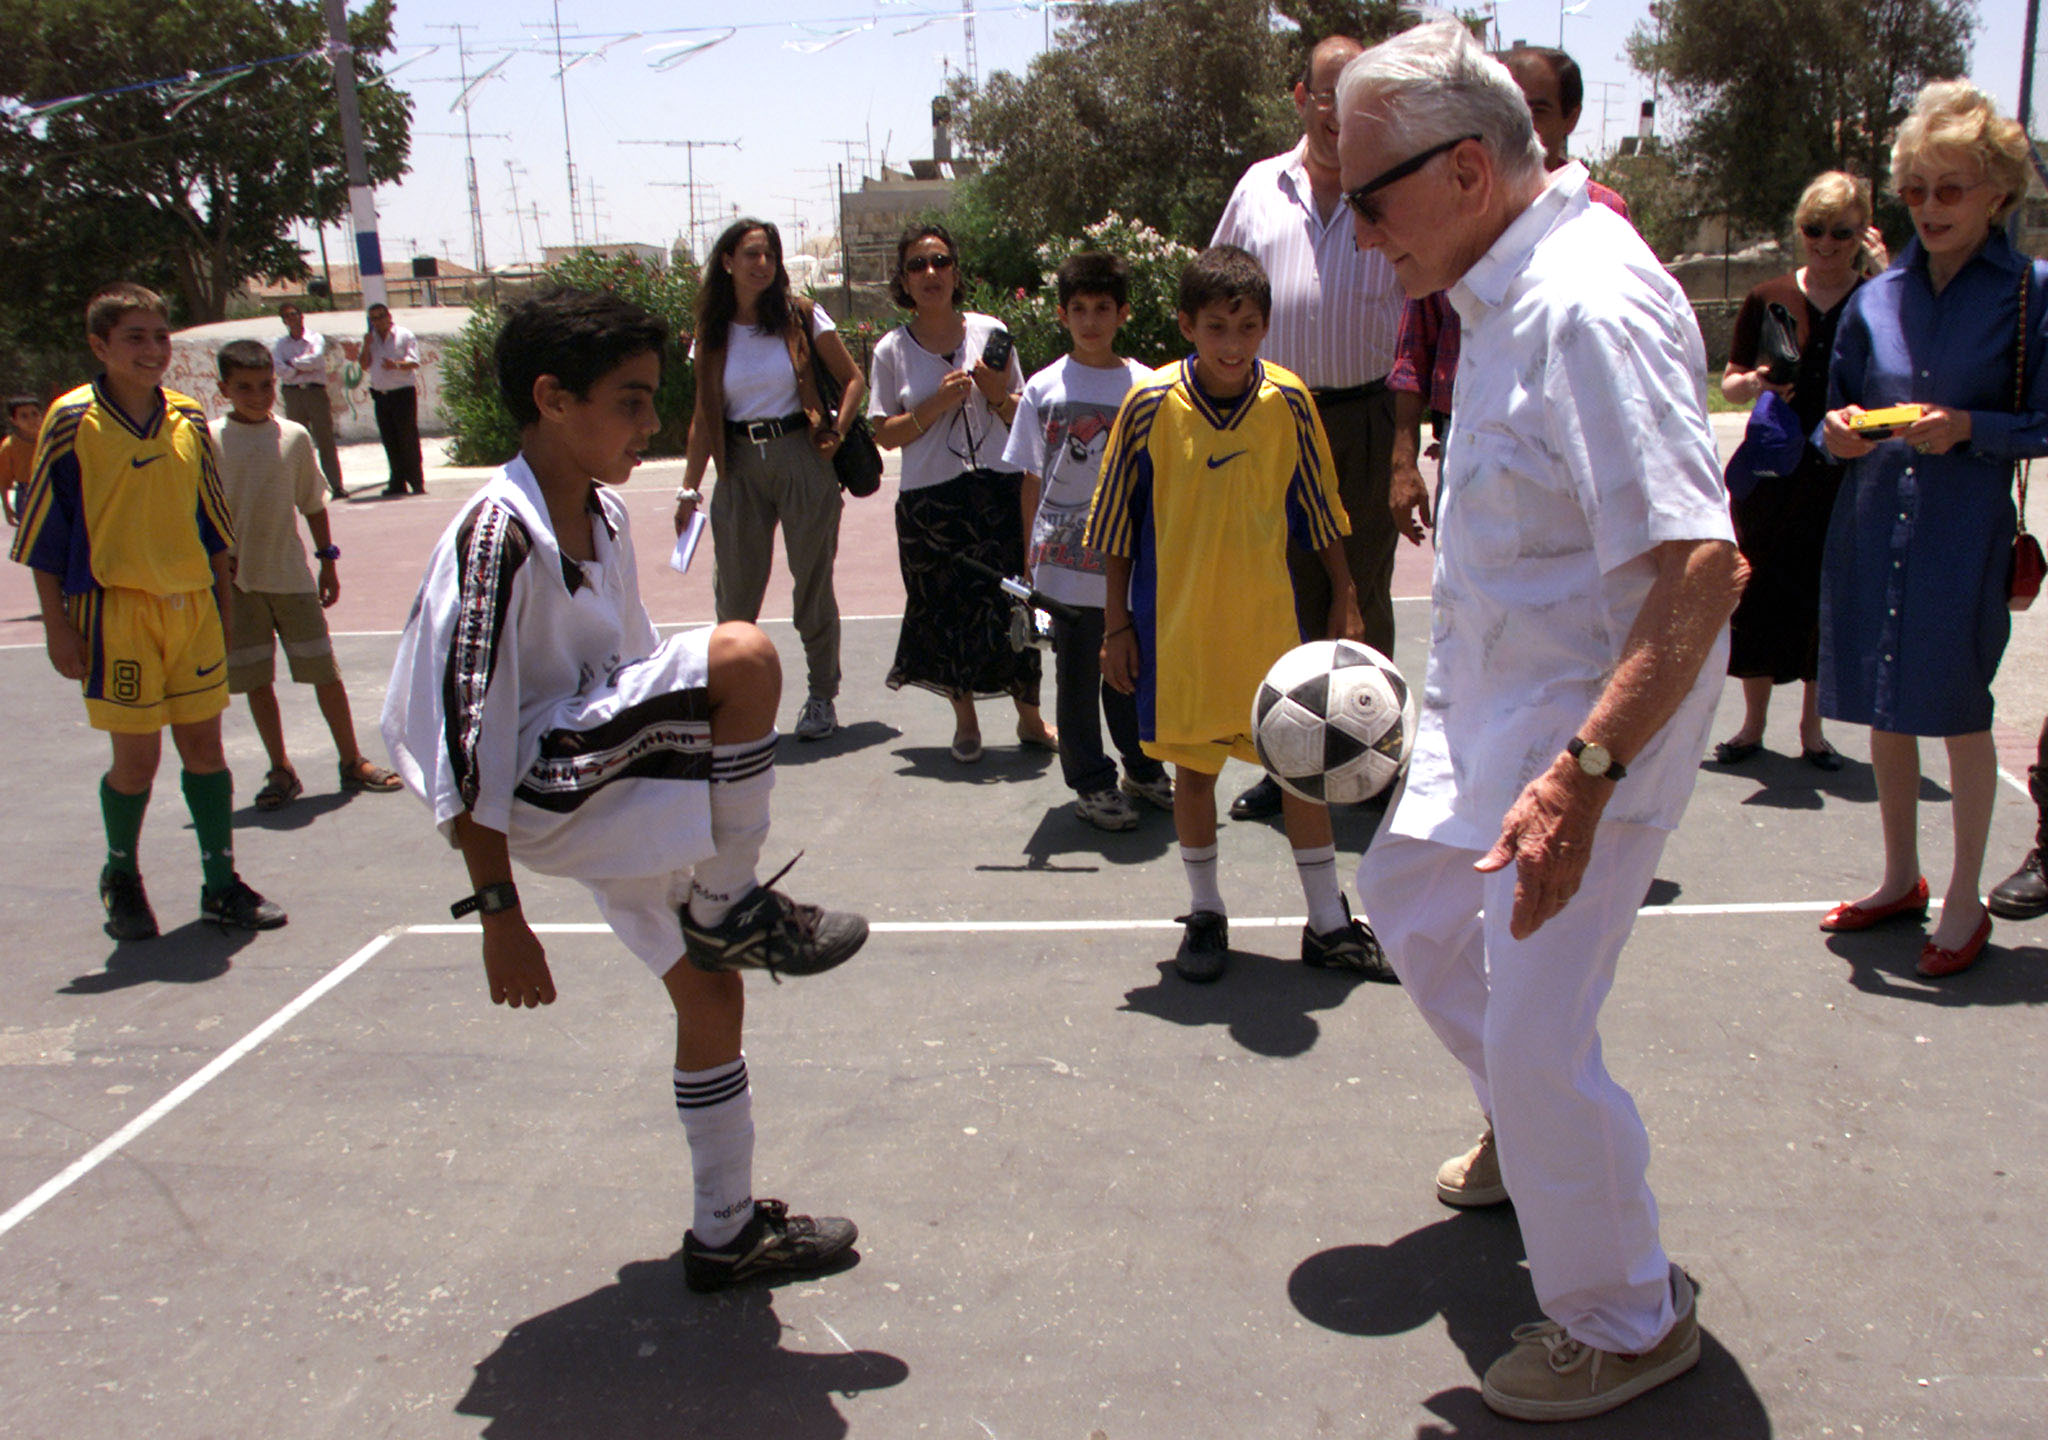 U.S. actor Kirk Douglas plays football with Palestinian children in a playgound he and his wife have donated to the Muslim Quarter of Jerusalem's Old City, July 17. Douglas and his wife Ann have donated five playgrounds to Israeli children and say the one in the Muslim Quarter is special because it represents their hope for a future peace for all Israeli children. - RTXJVQ1